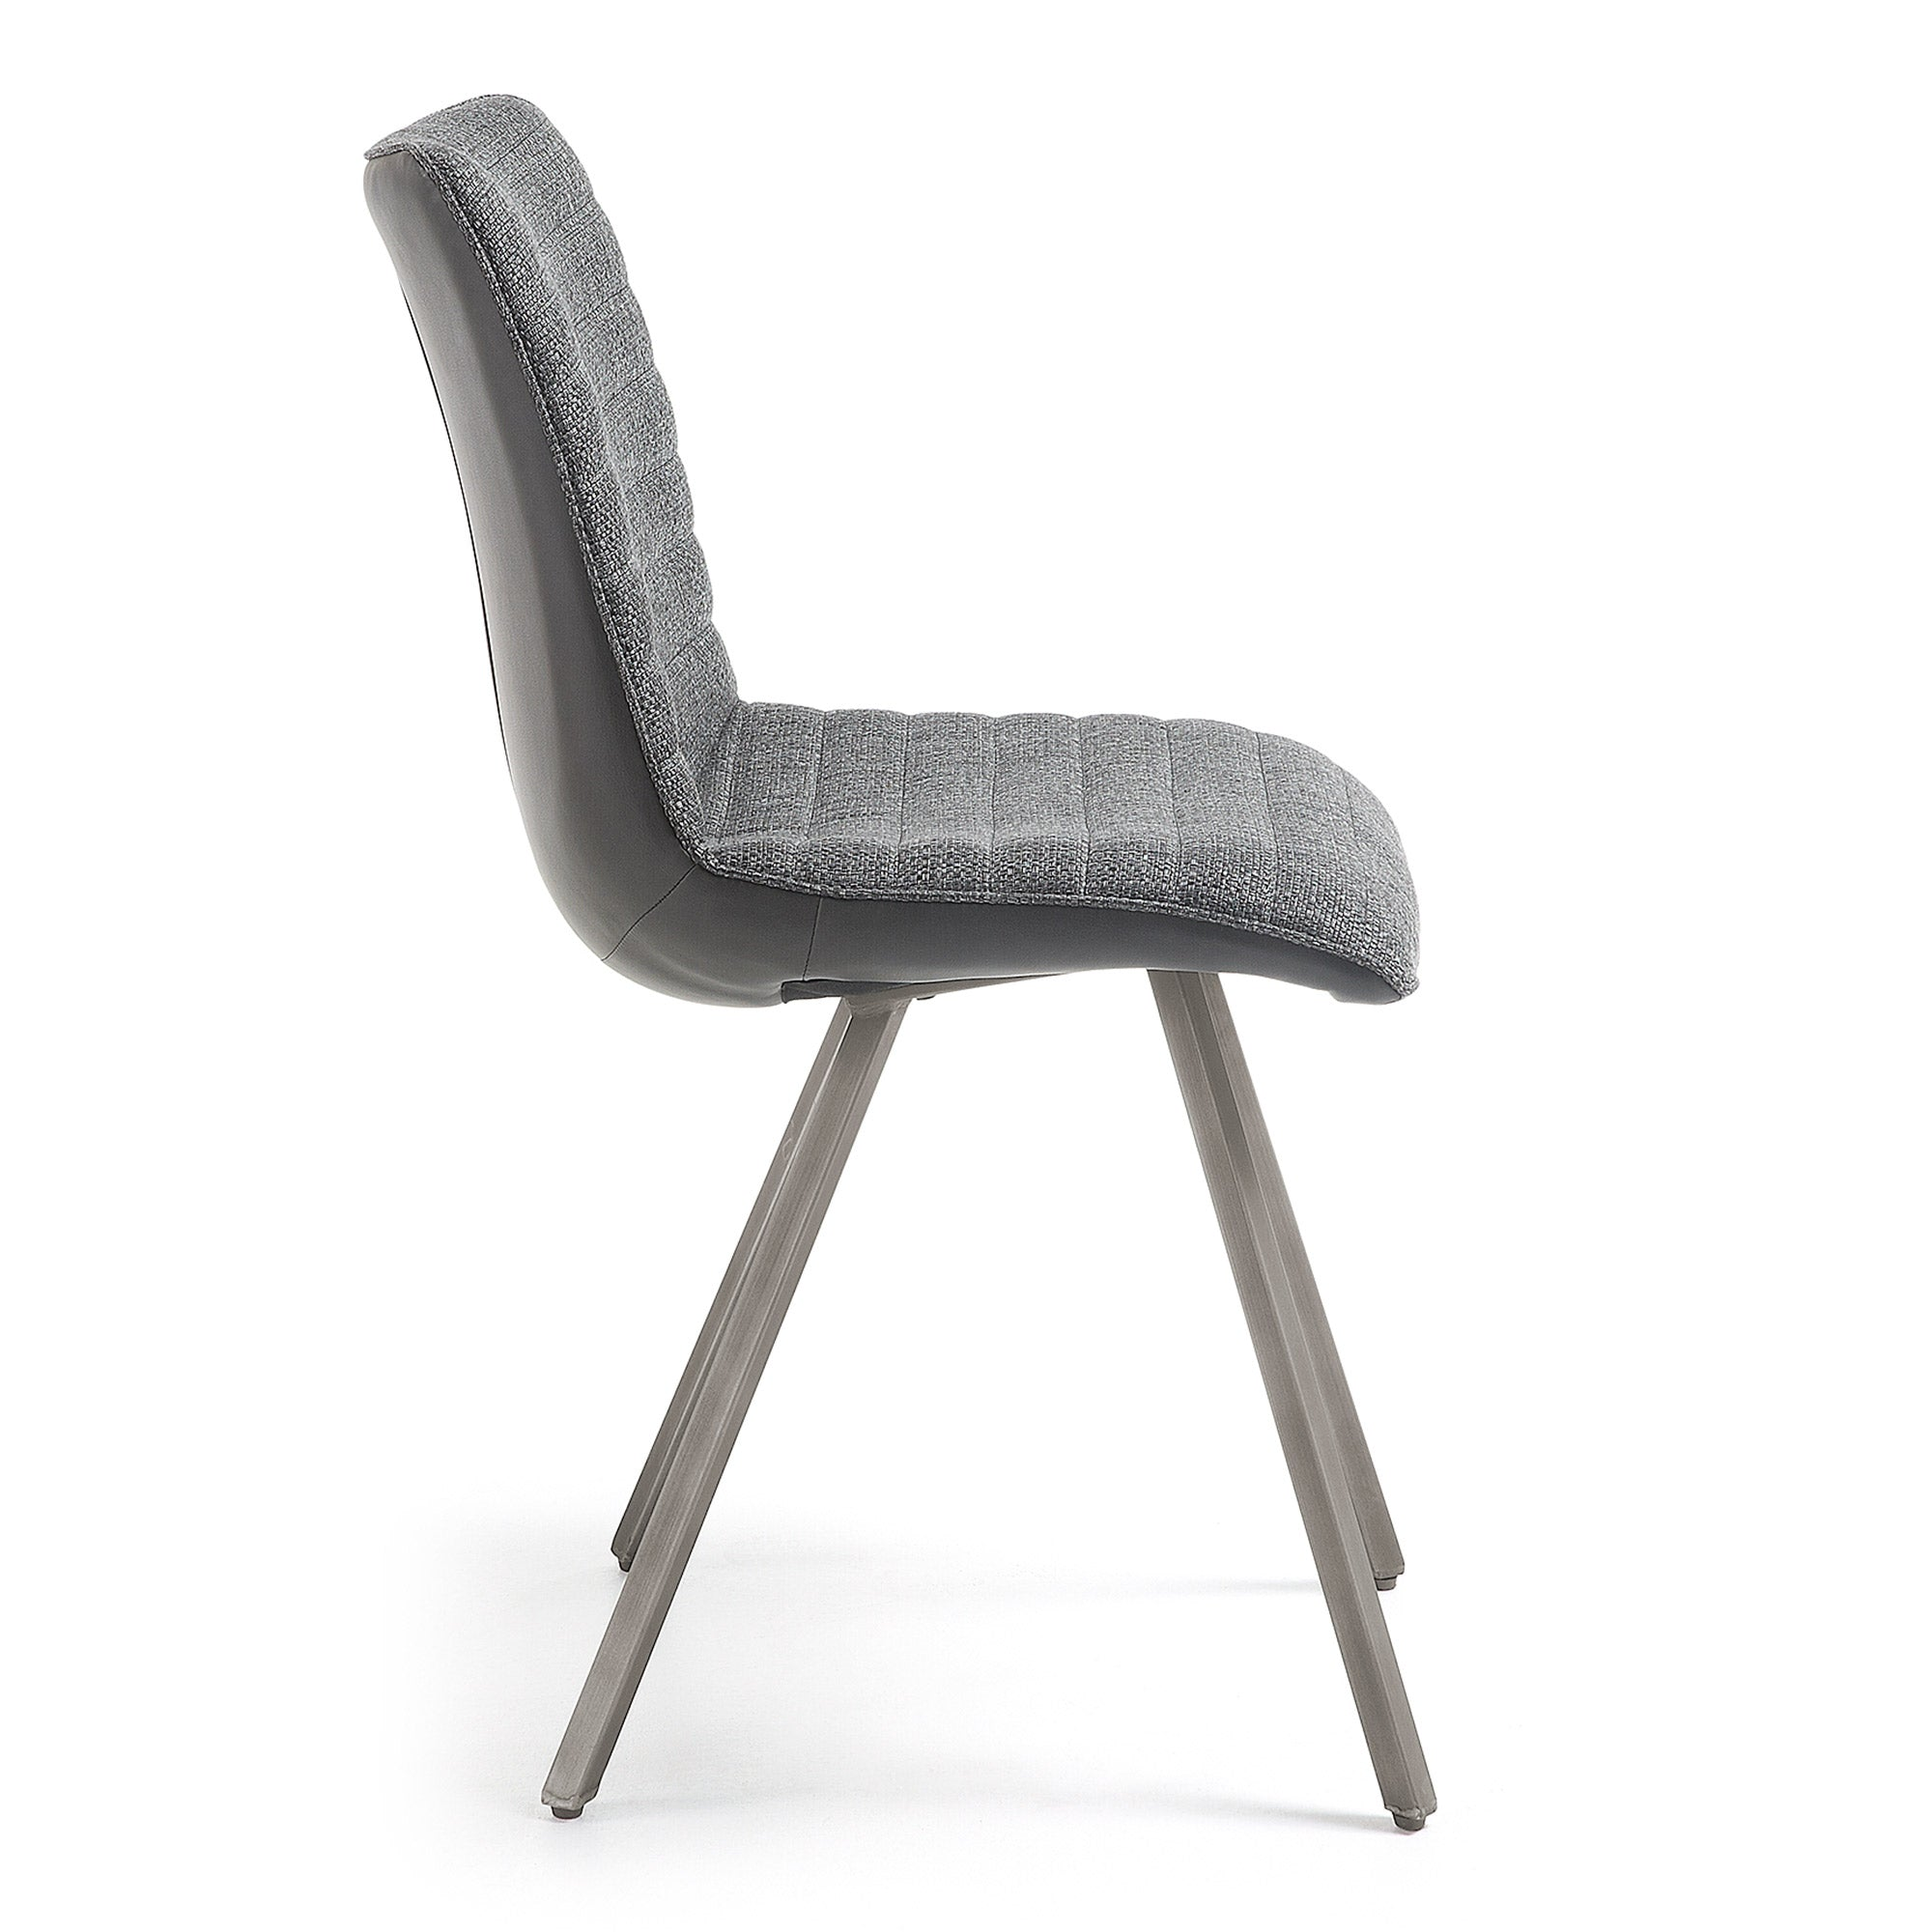 Lianne Chair Upholstered in Dark Grey Fabric